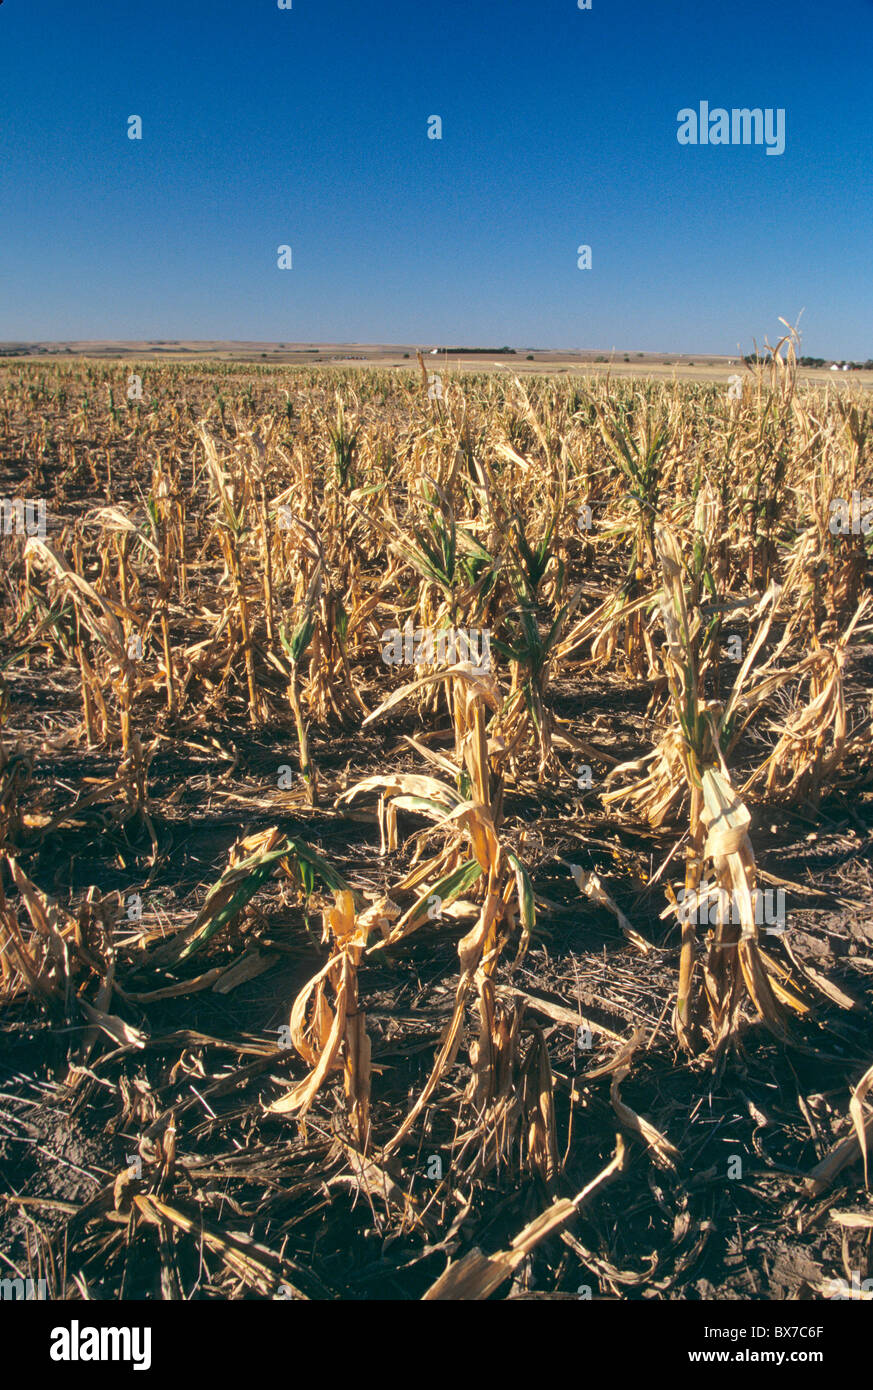 Crop failure due to drought & hail, - Stock Image